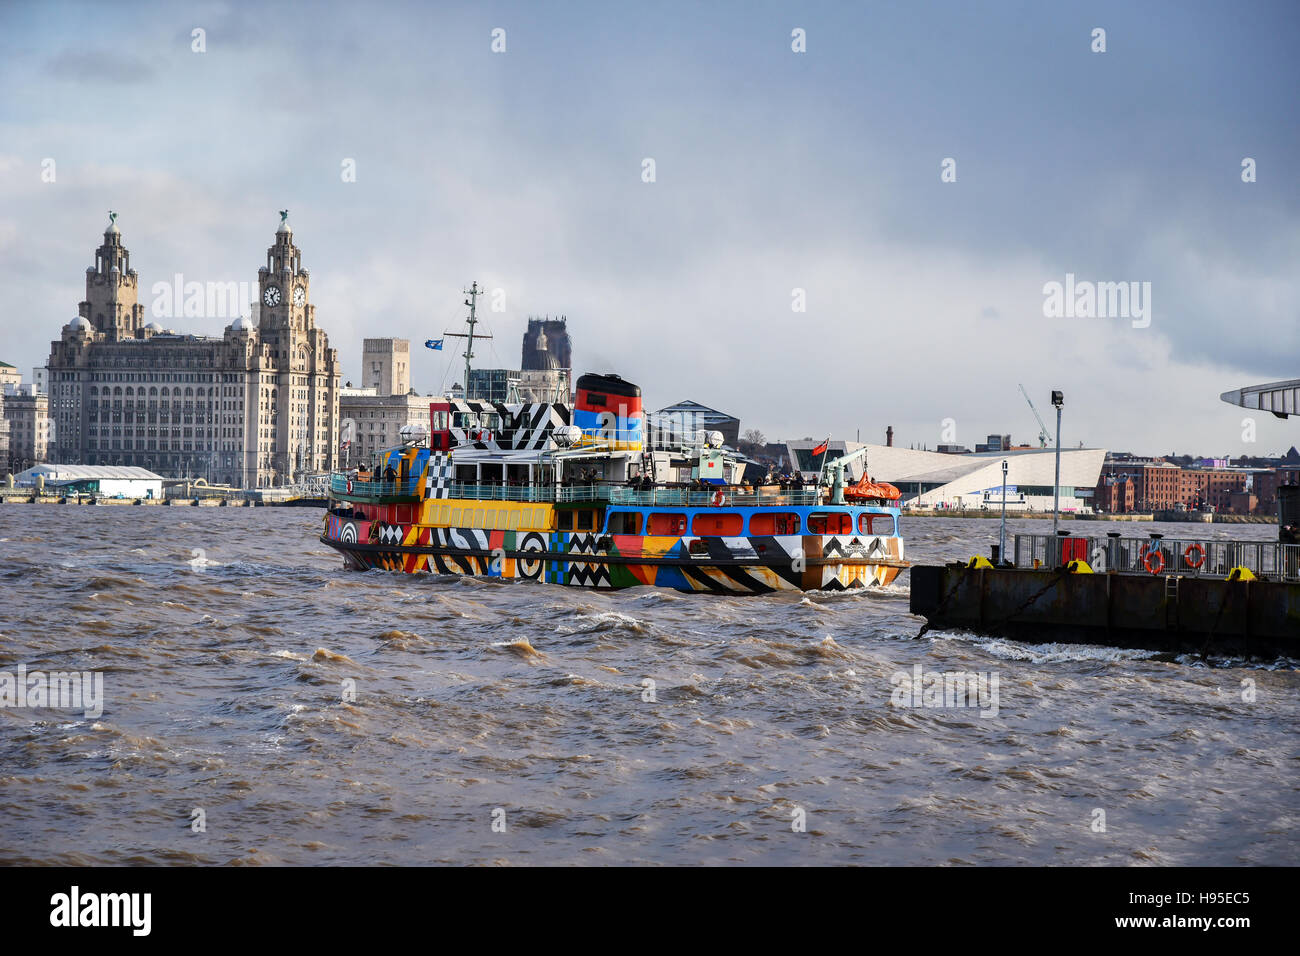 Seacombe. Wirral Cheshire North West, UK. 19th Nov, 2016. Dazzle Ferry Snowdrop resumes sailing. The Mersey Ferries - Stock Image